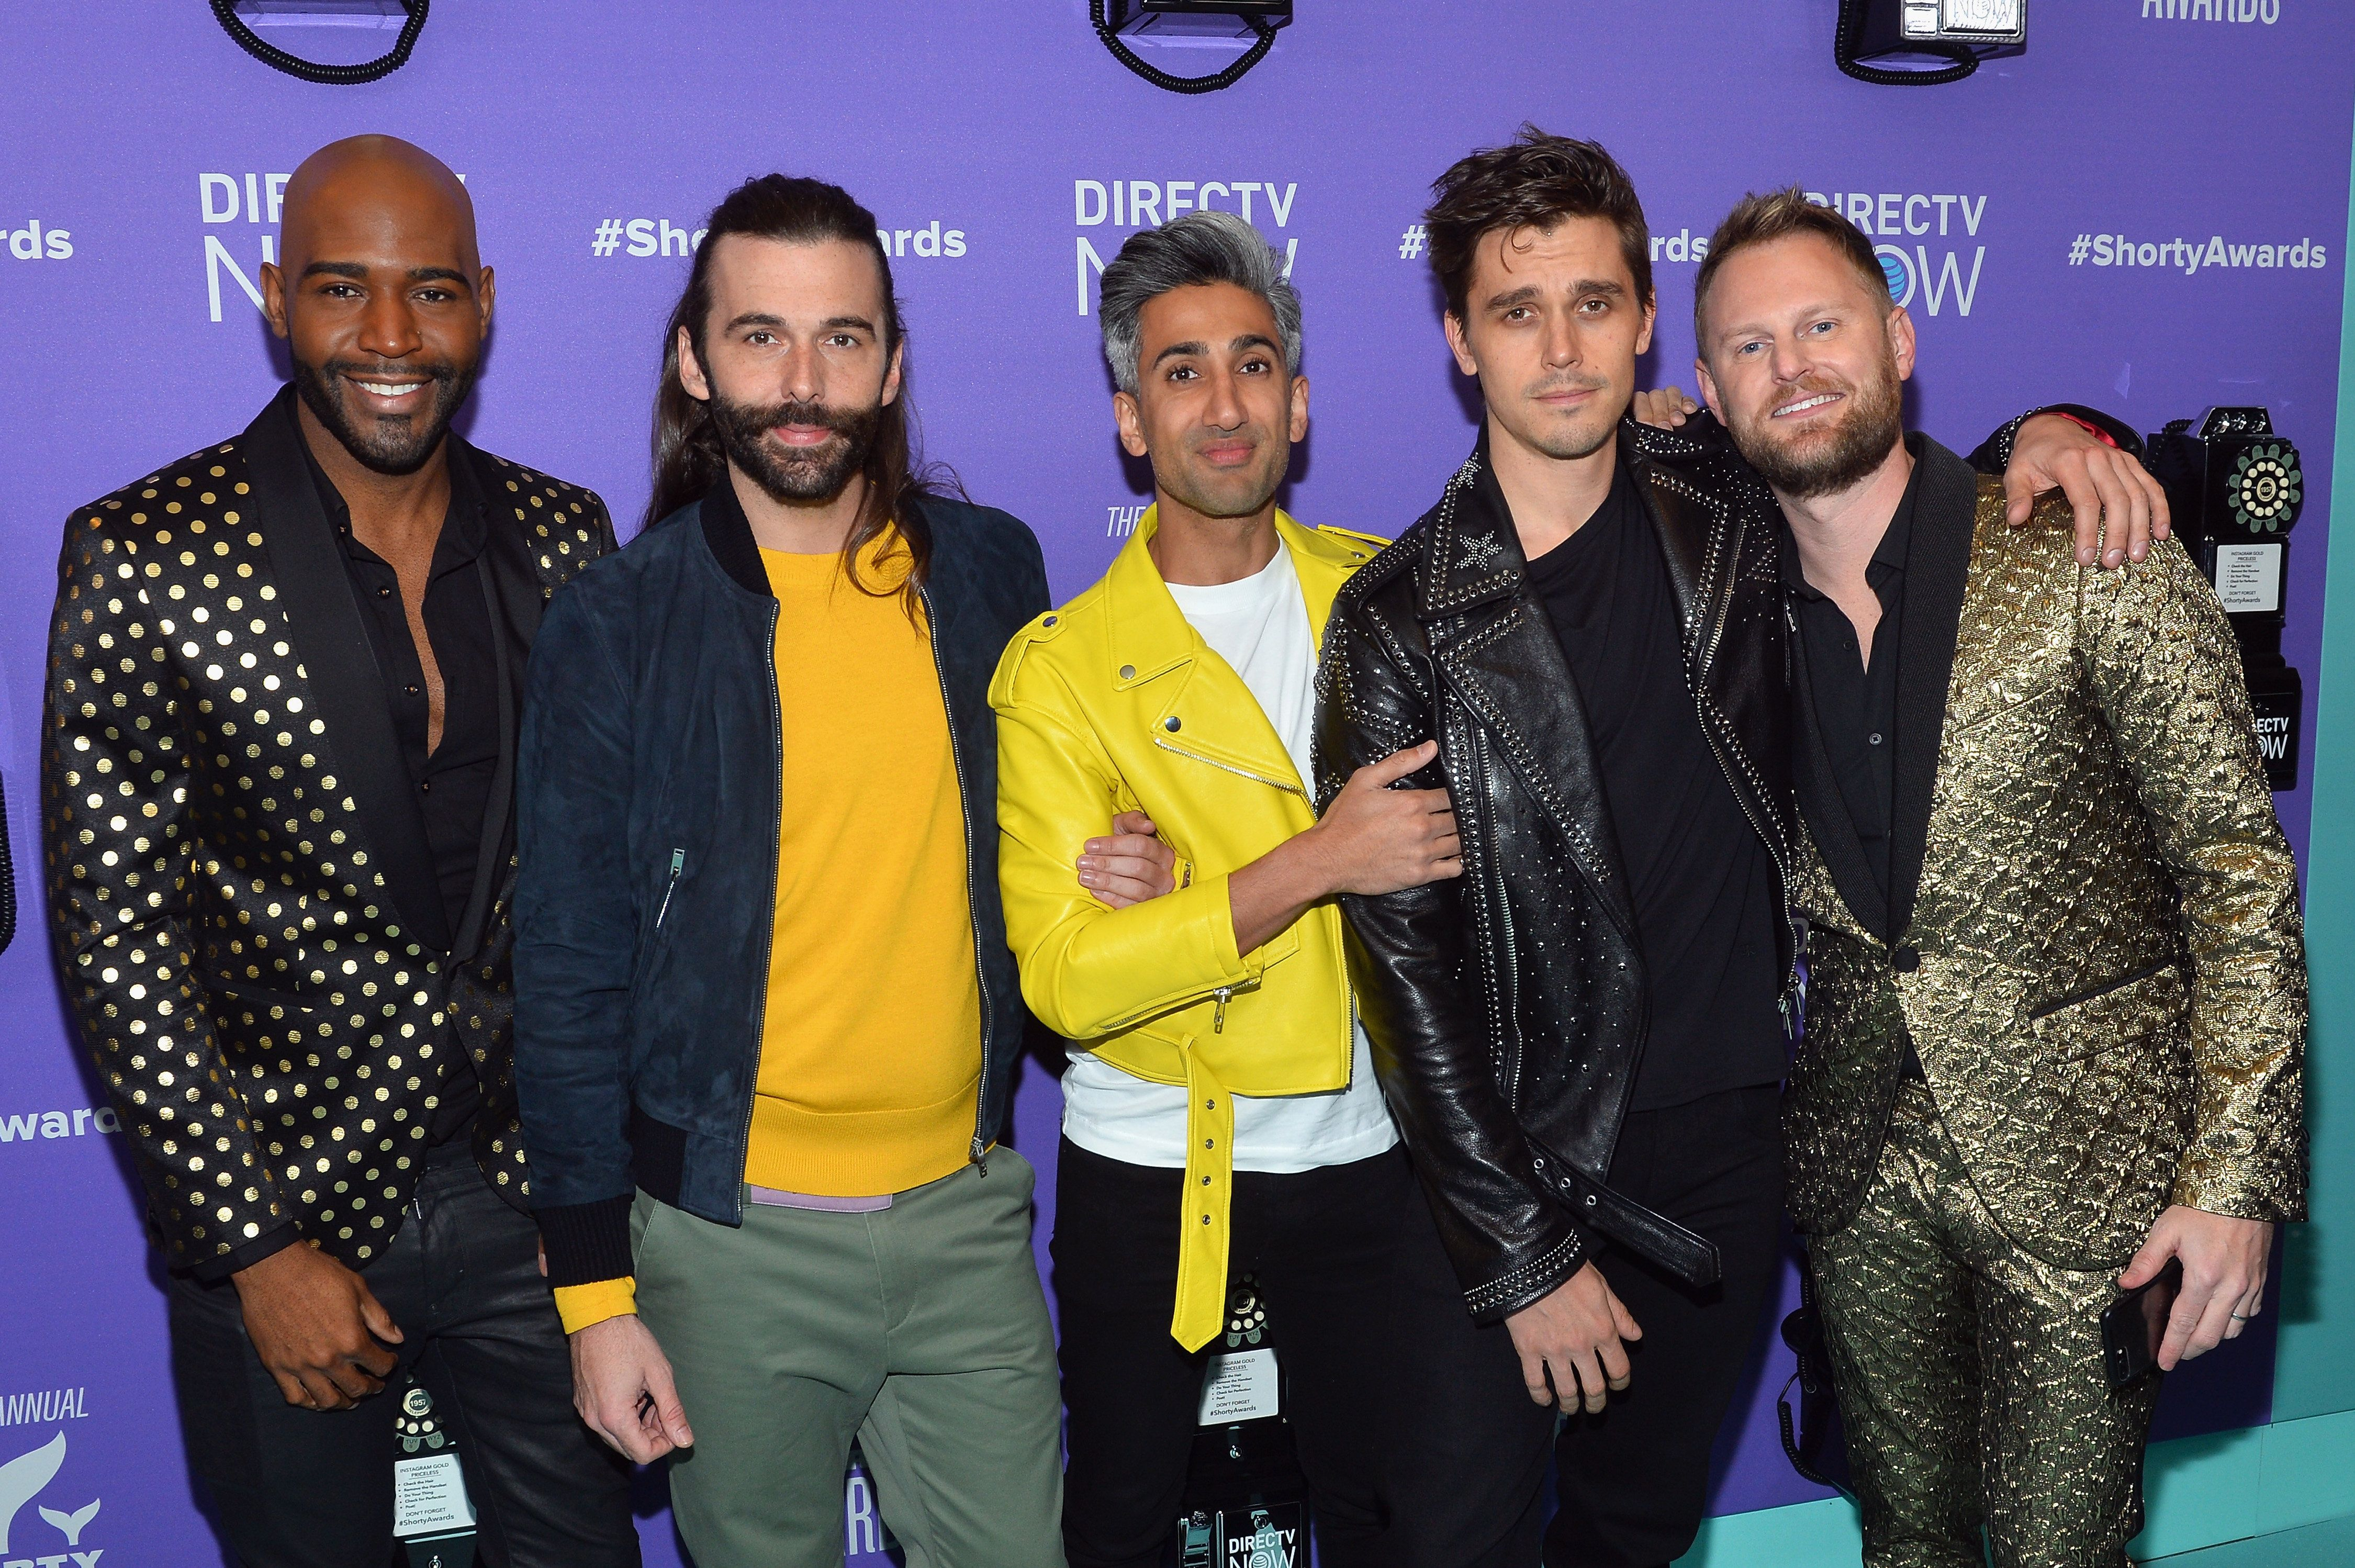 NEW YORK, NY - APRIL 15:  (L-R) Karamo Brown, Jonathan Van Ness, Tan France, Antoni Porowski, and Bobby Berk of Queer Eye attend the 10th Annual Shorty Awards at PlayStation Theater on April 15, 2018 in New York City.  (Photo by Noam Galai/Getty Images for Shorty Awards)